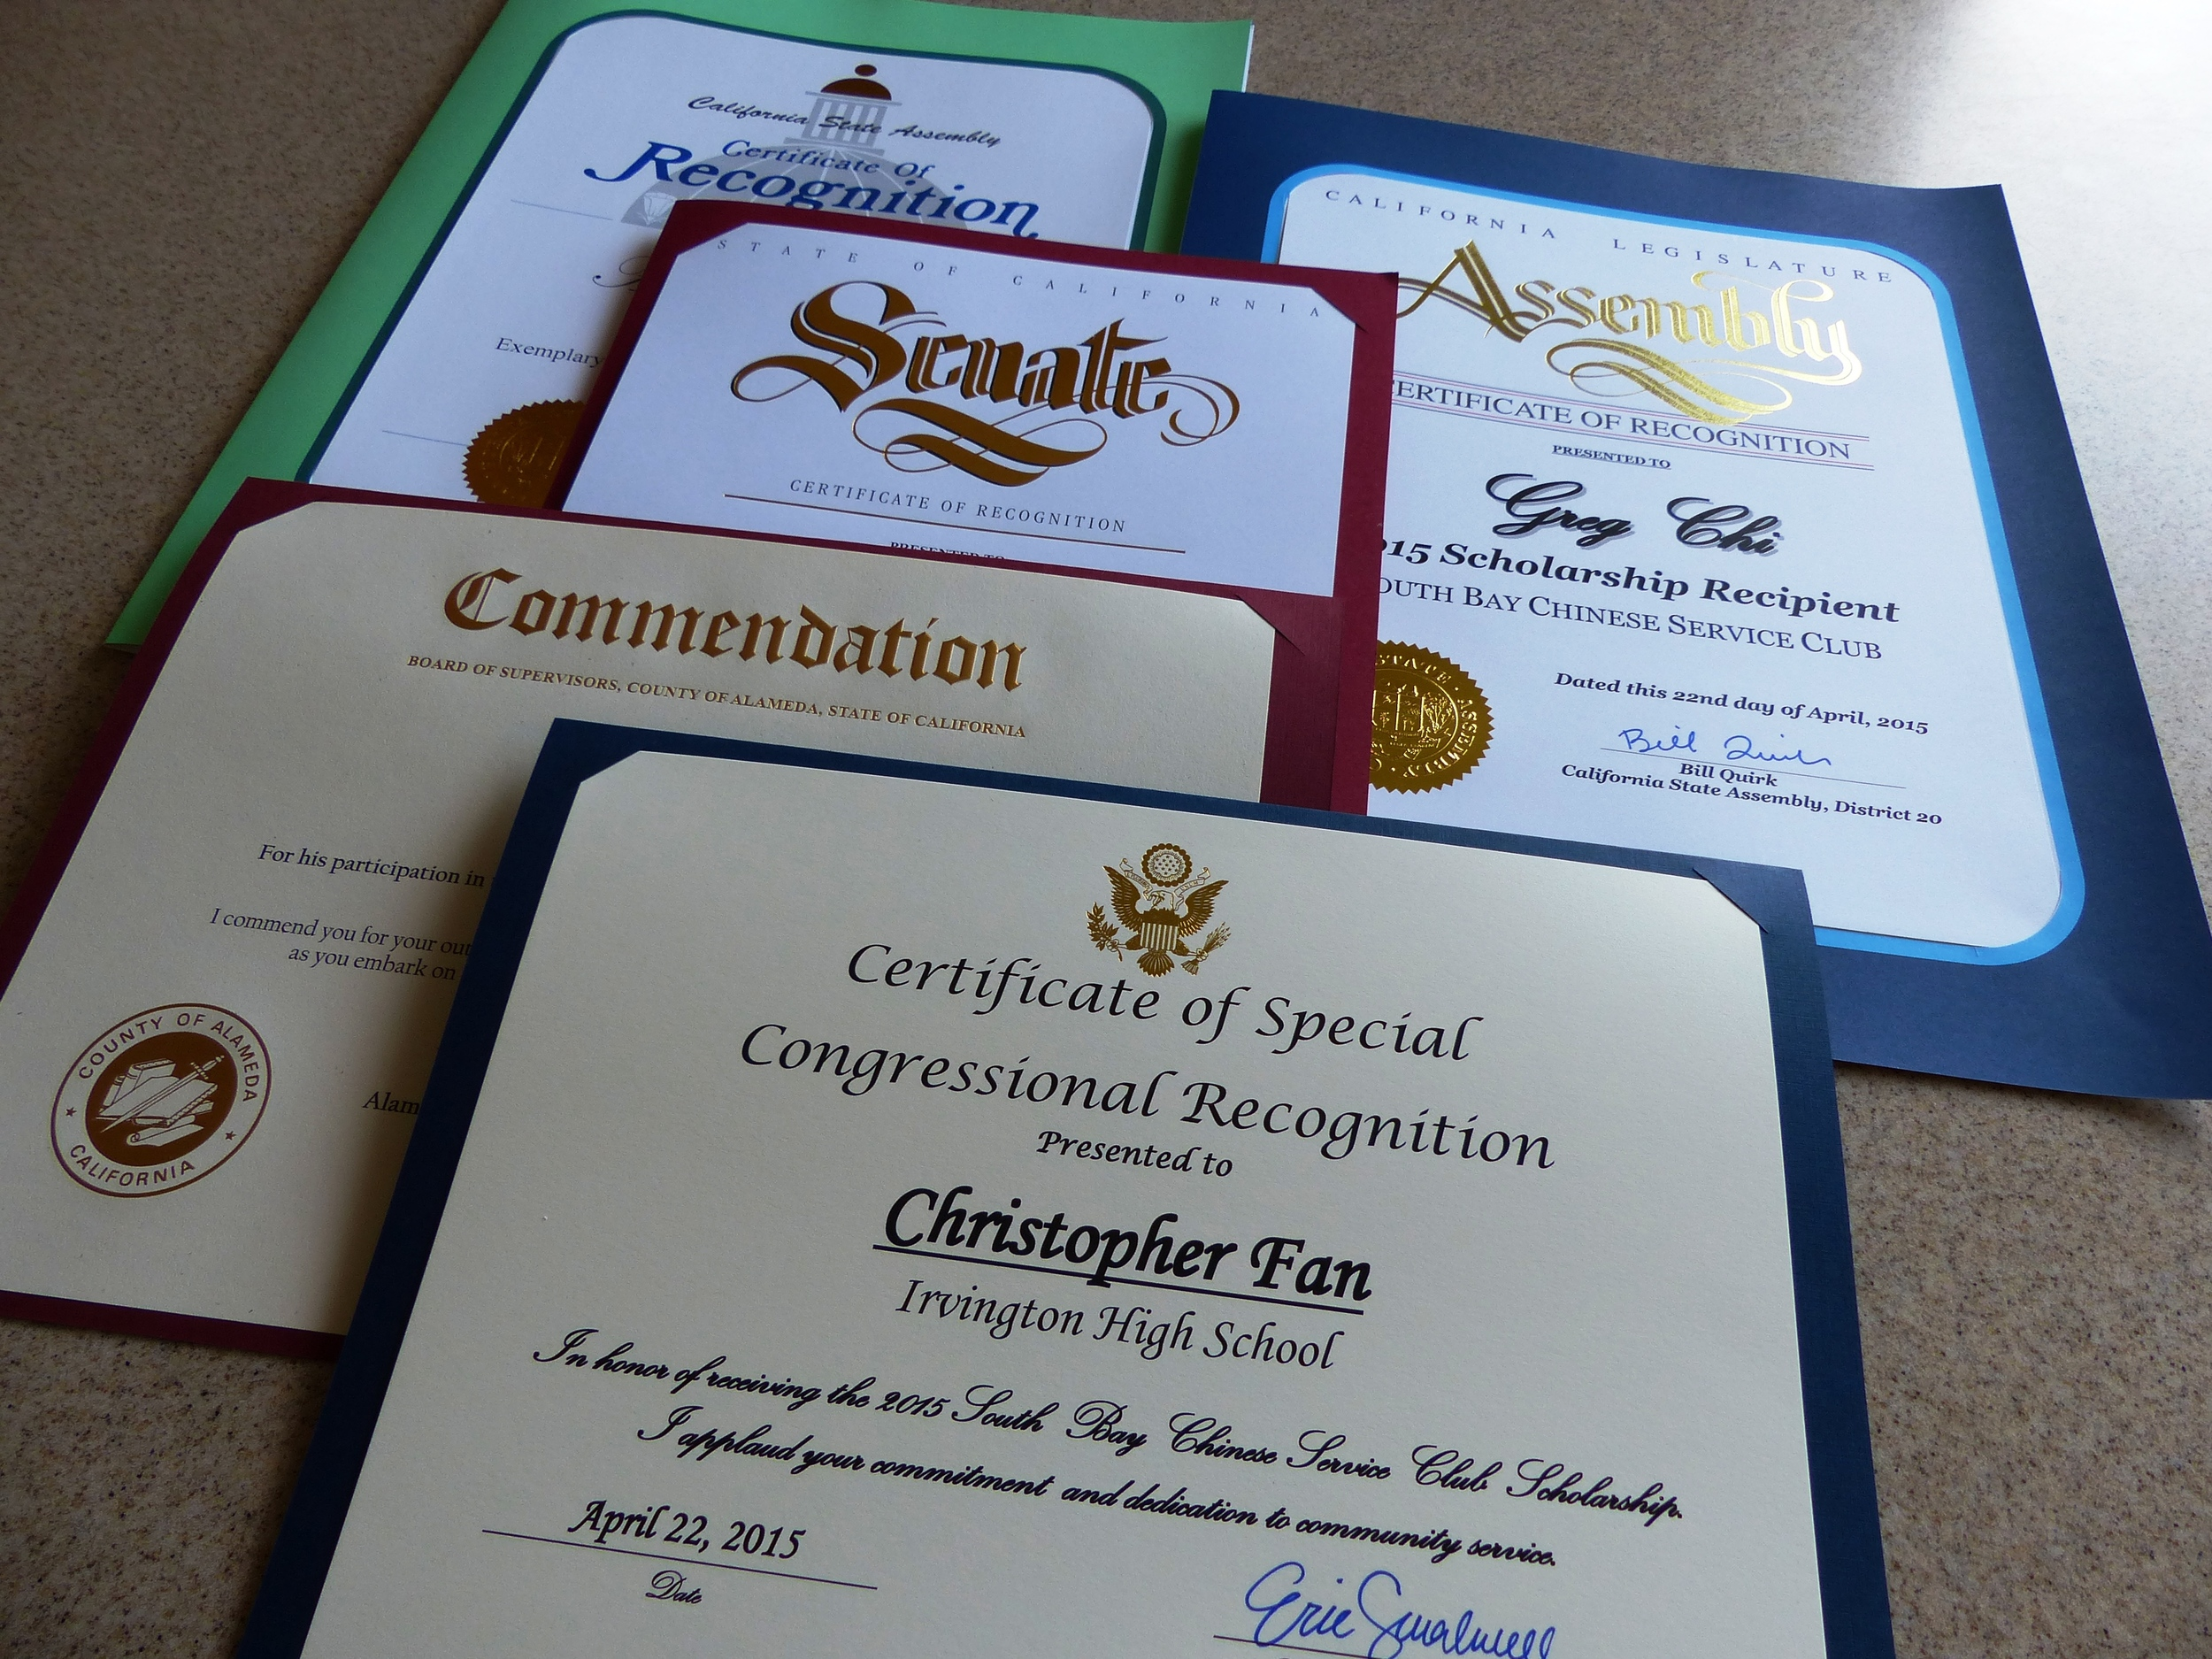 Scholarship award recipients also receive recognition from members of U.S. Congress, State Senate and Assembly, and County Supervisor.